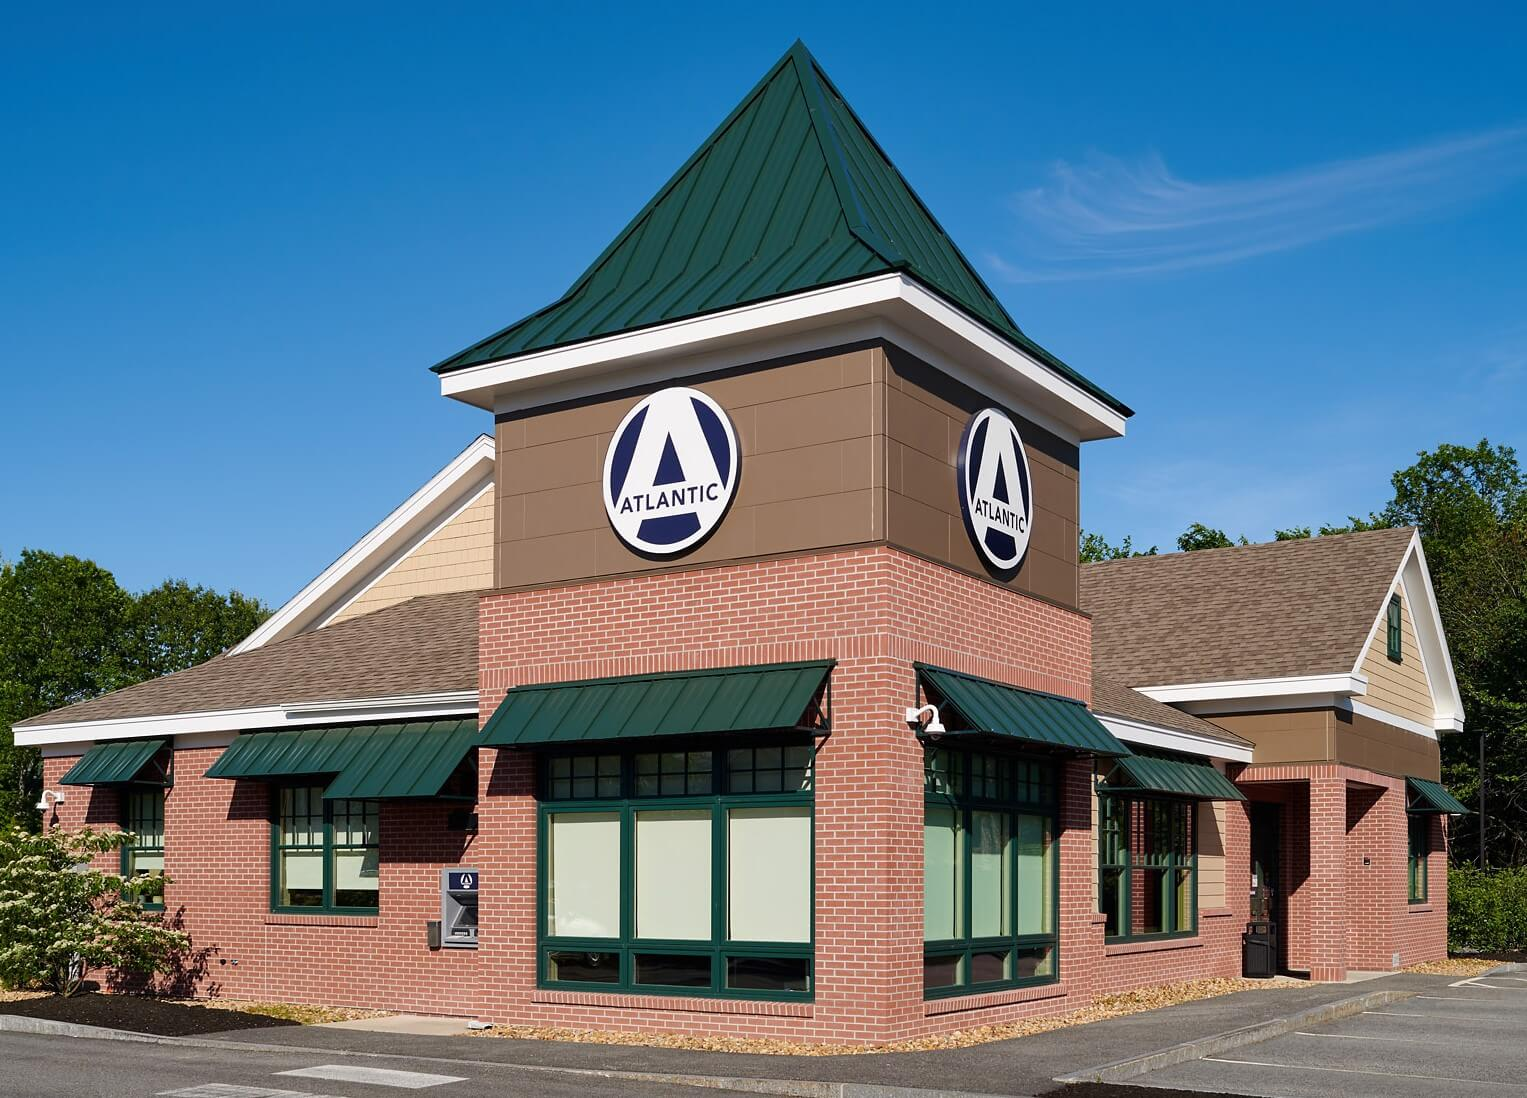 Atlantic Federal Credit Union outside of building